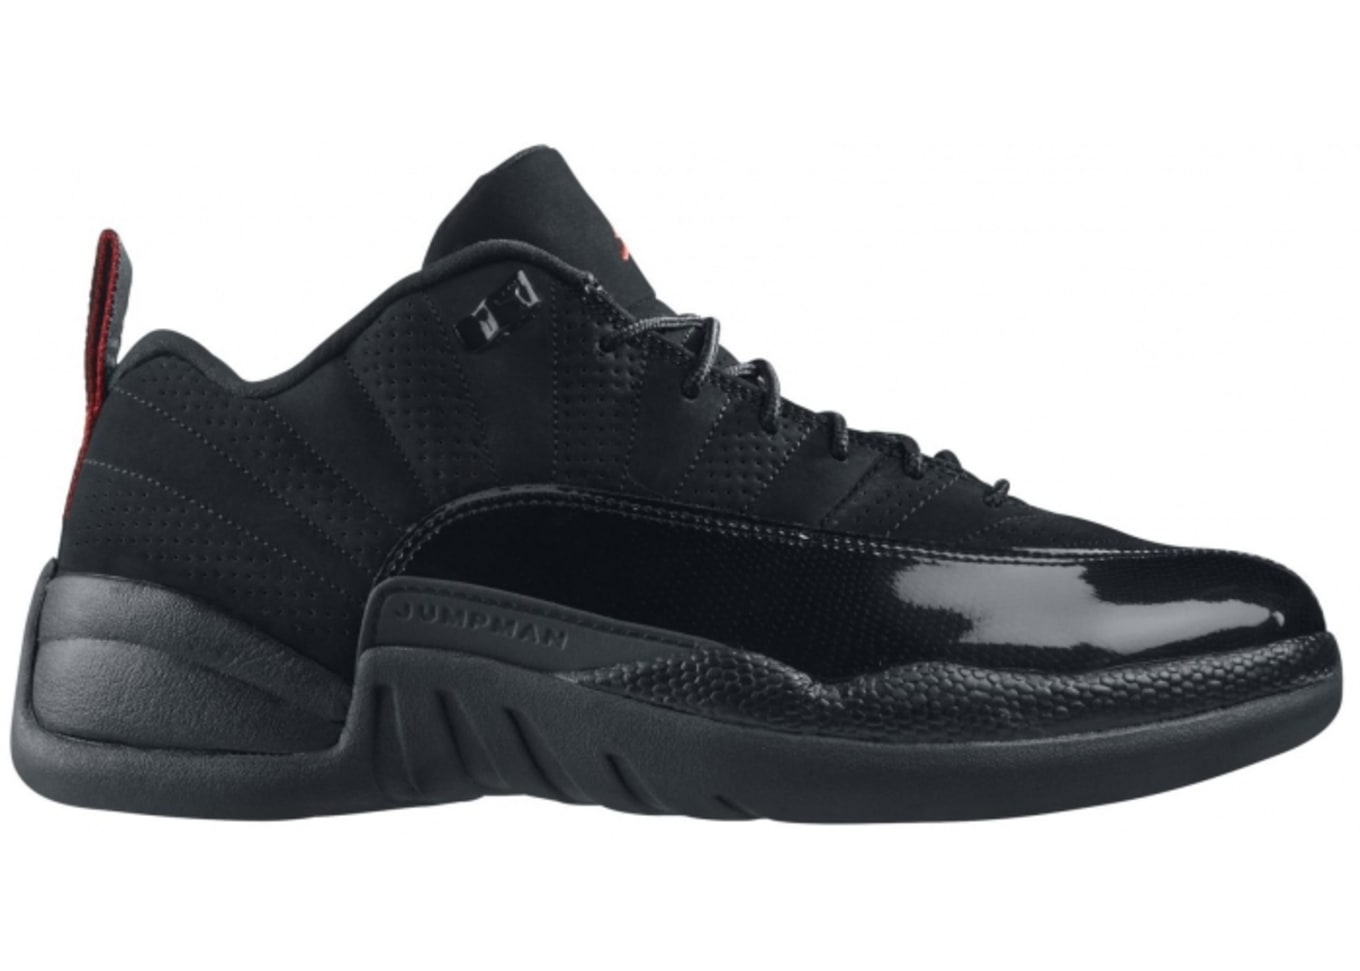 b62fa97c74a192 Air Jordan 12 Retro Low Black Varsity Red